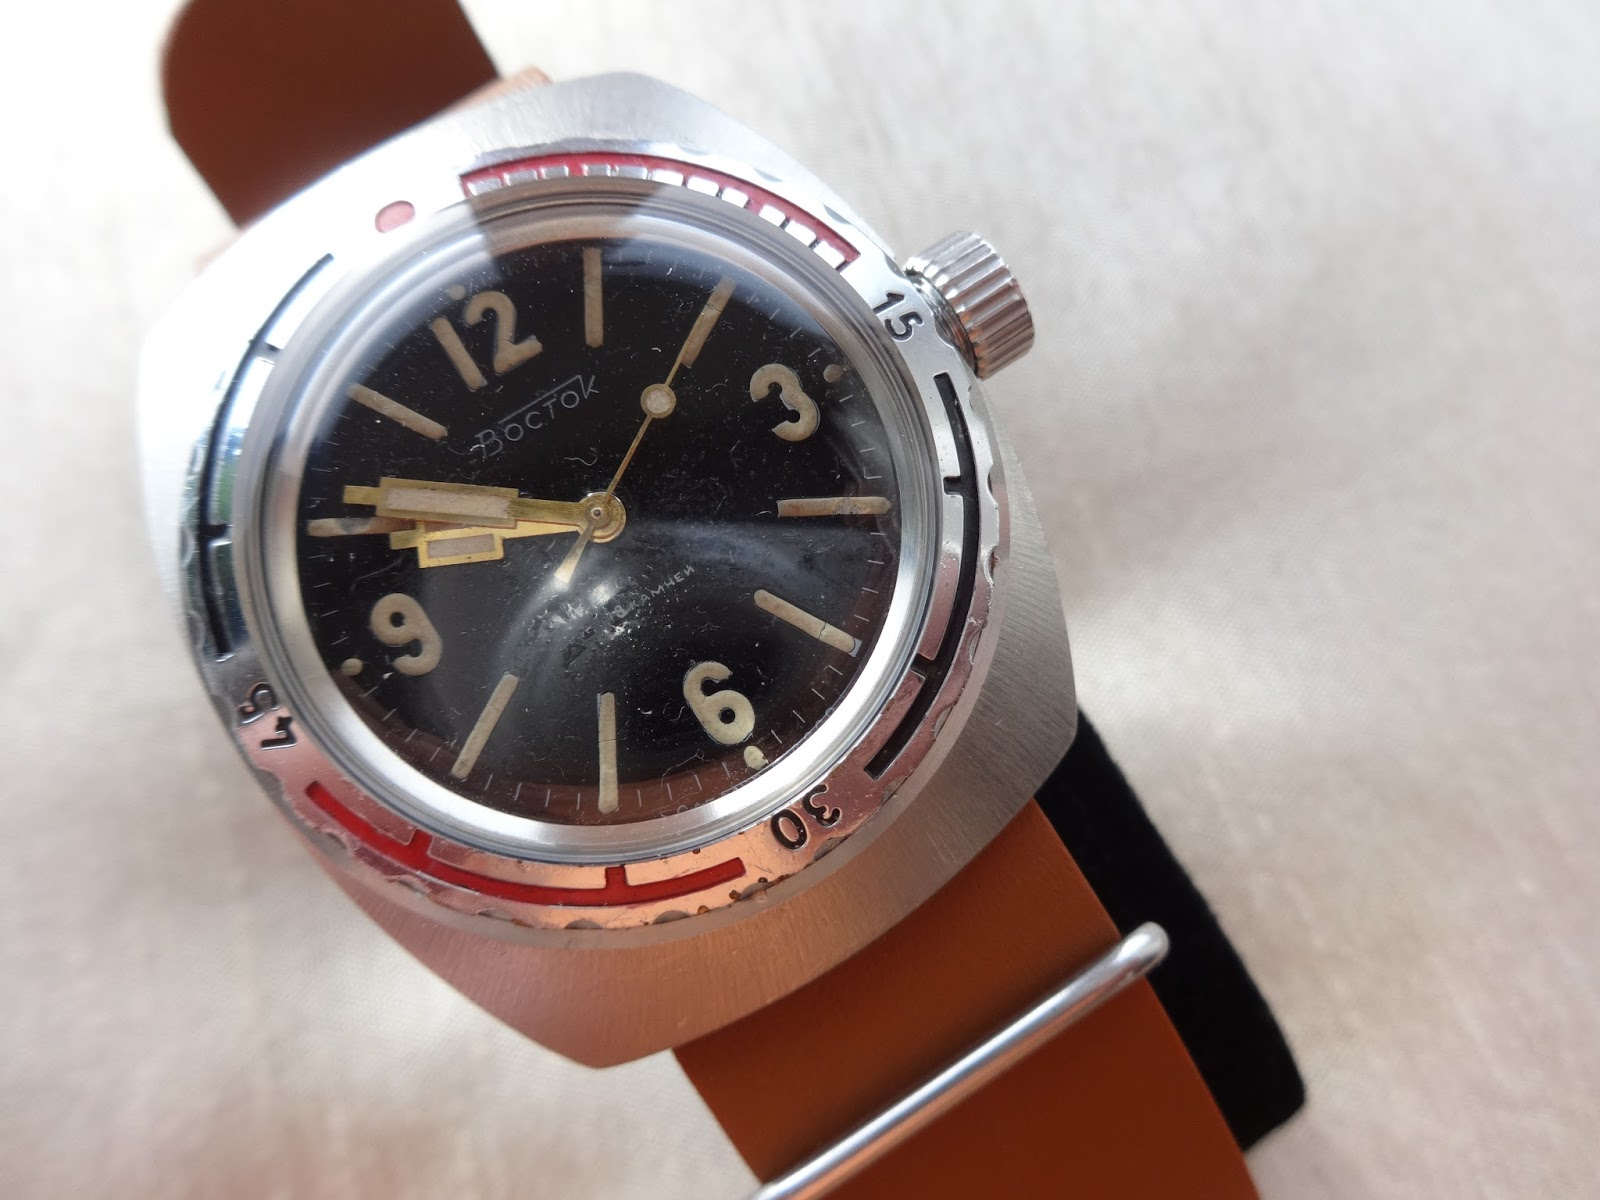 c3164740b95f Vostok 300m Amphibia  Rare . Just taken delivery of this watch